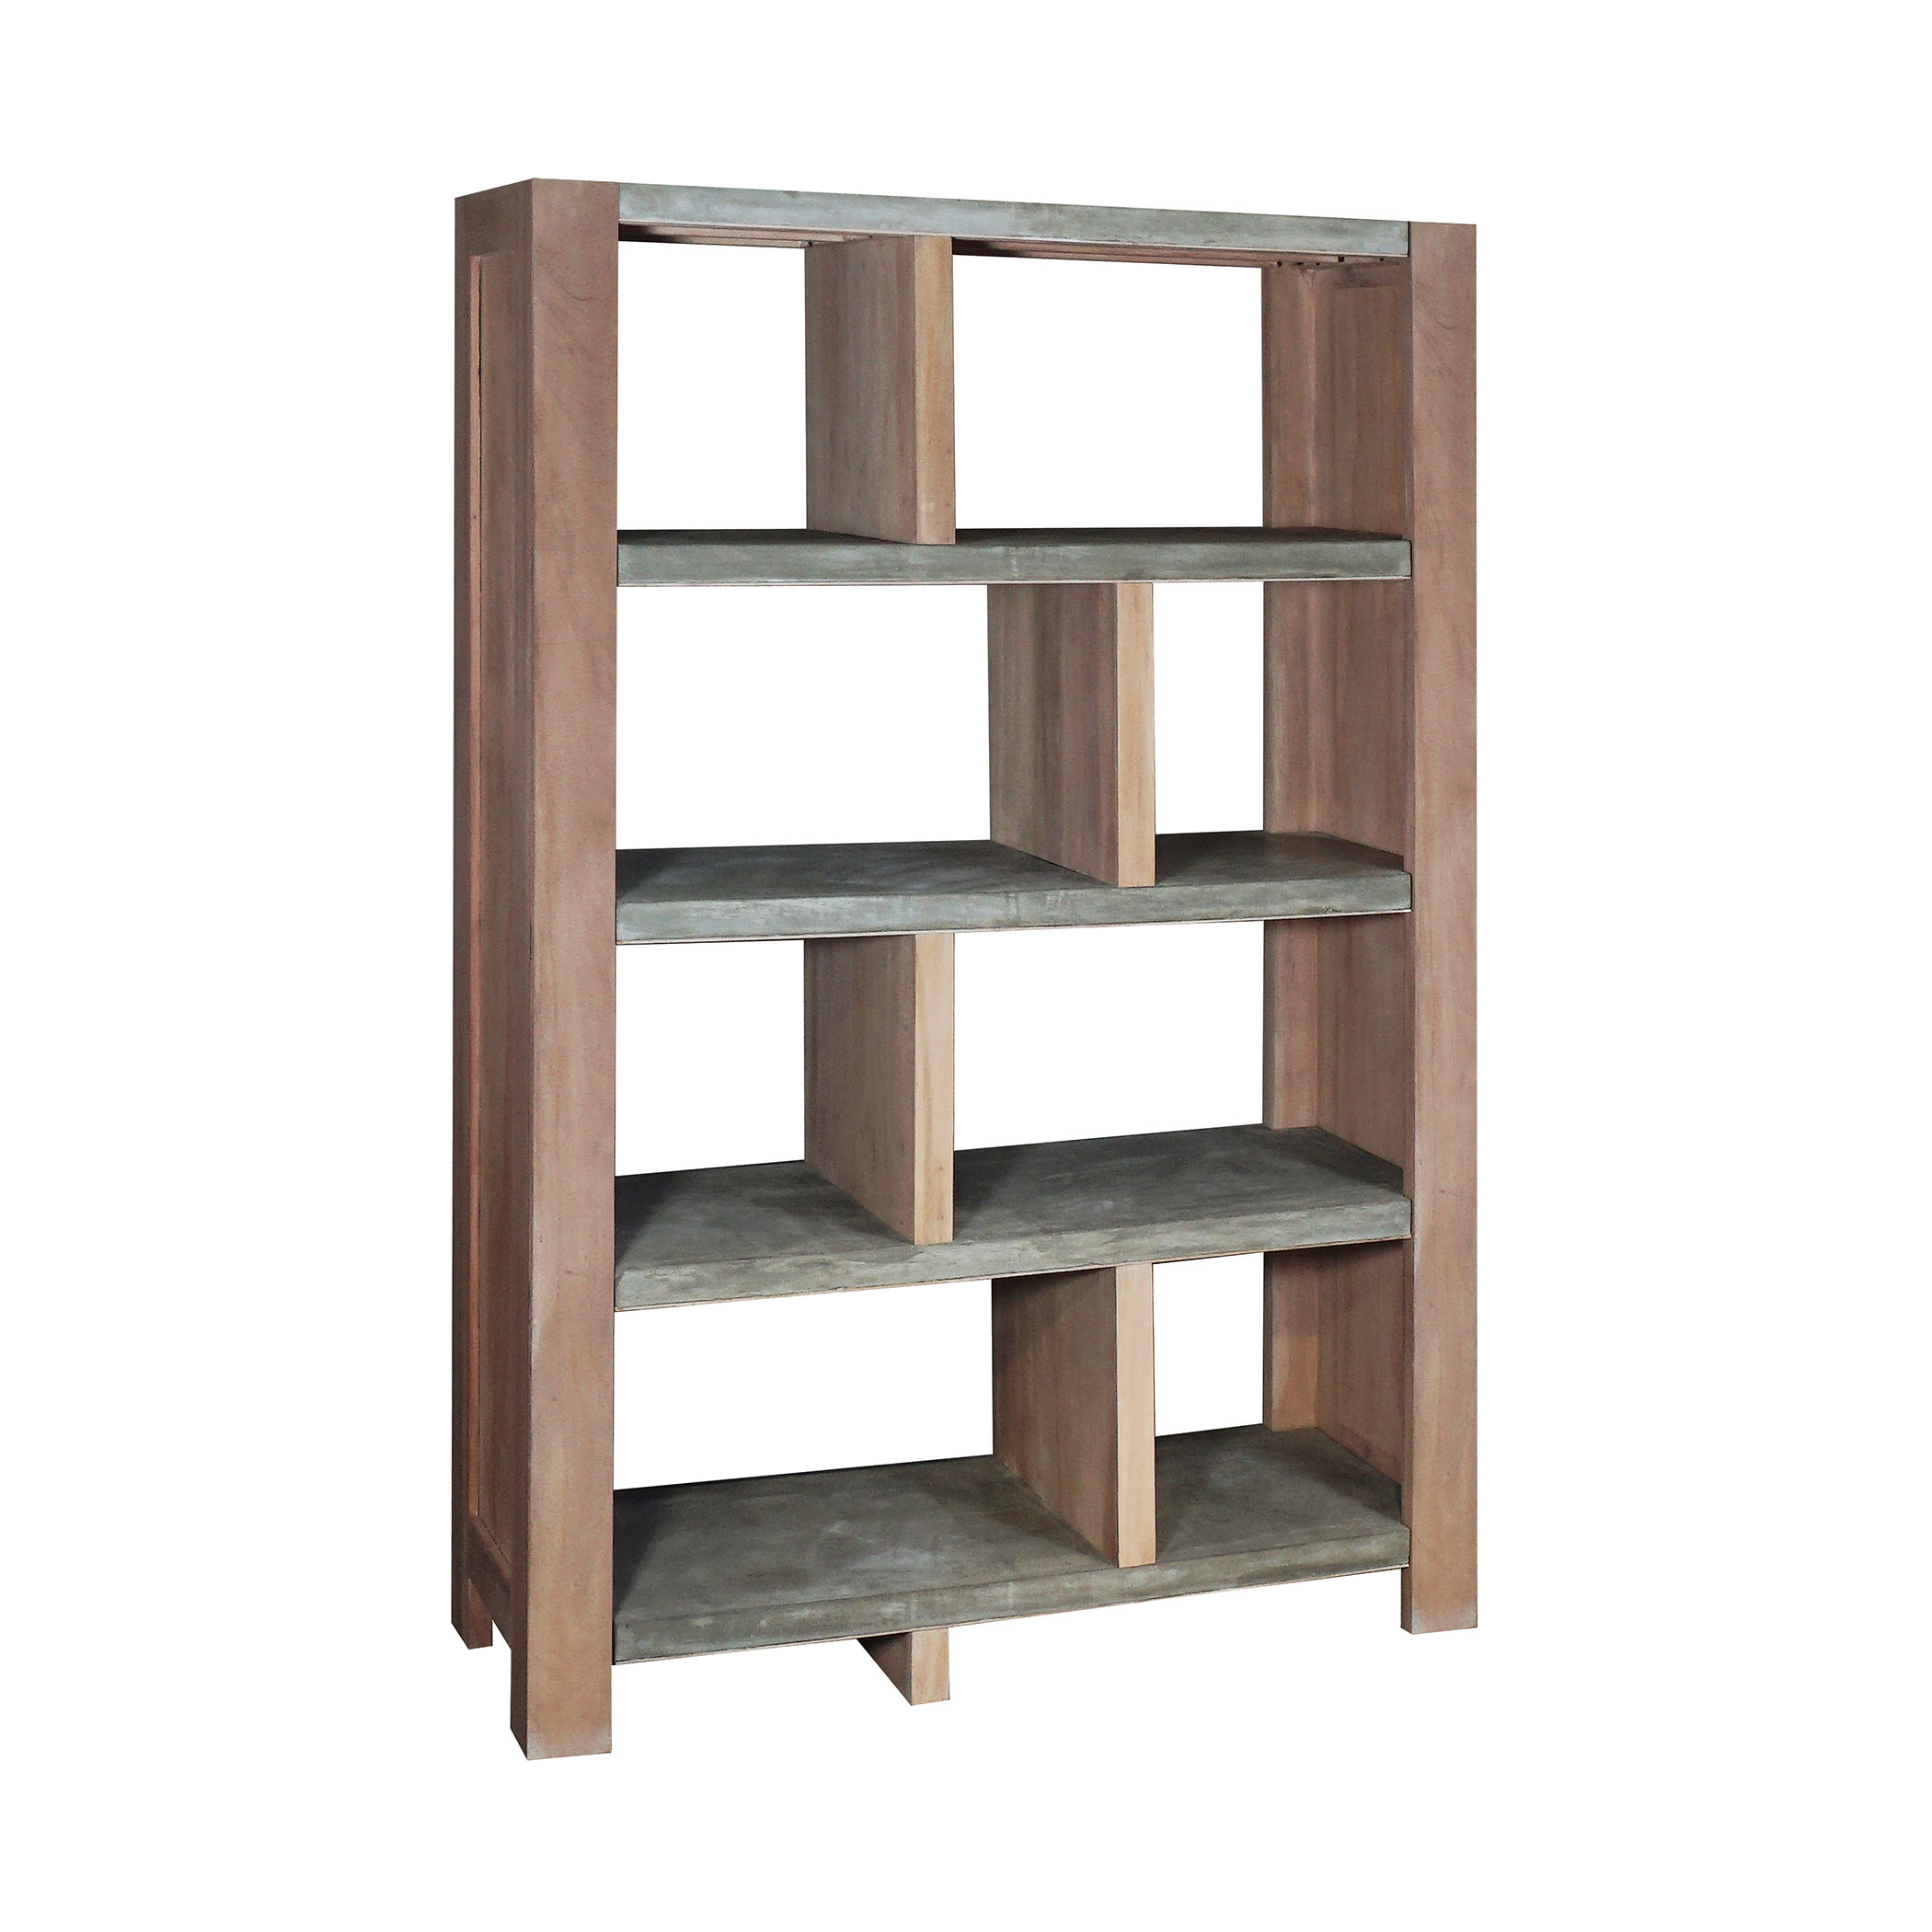 Irwin Shelving Unit | Elk Home